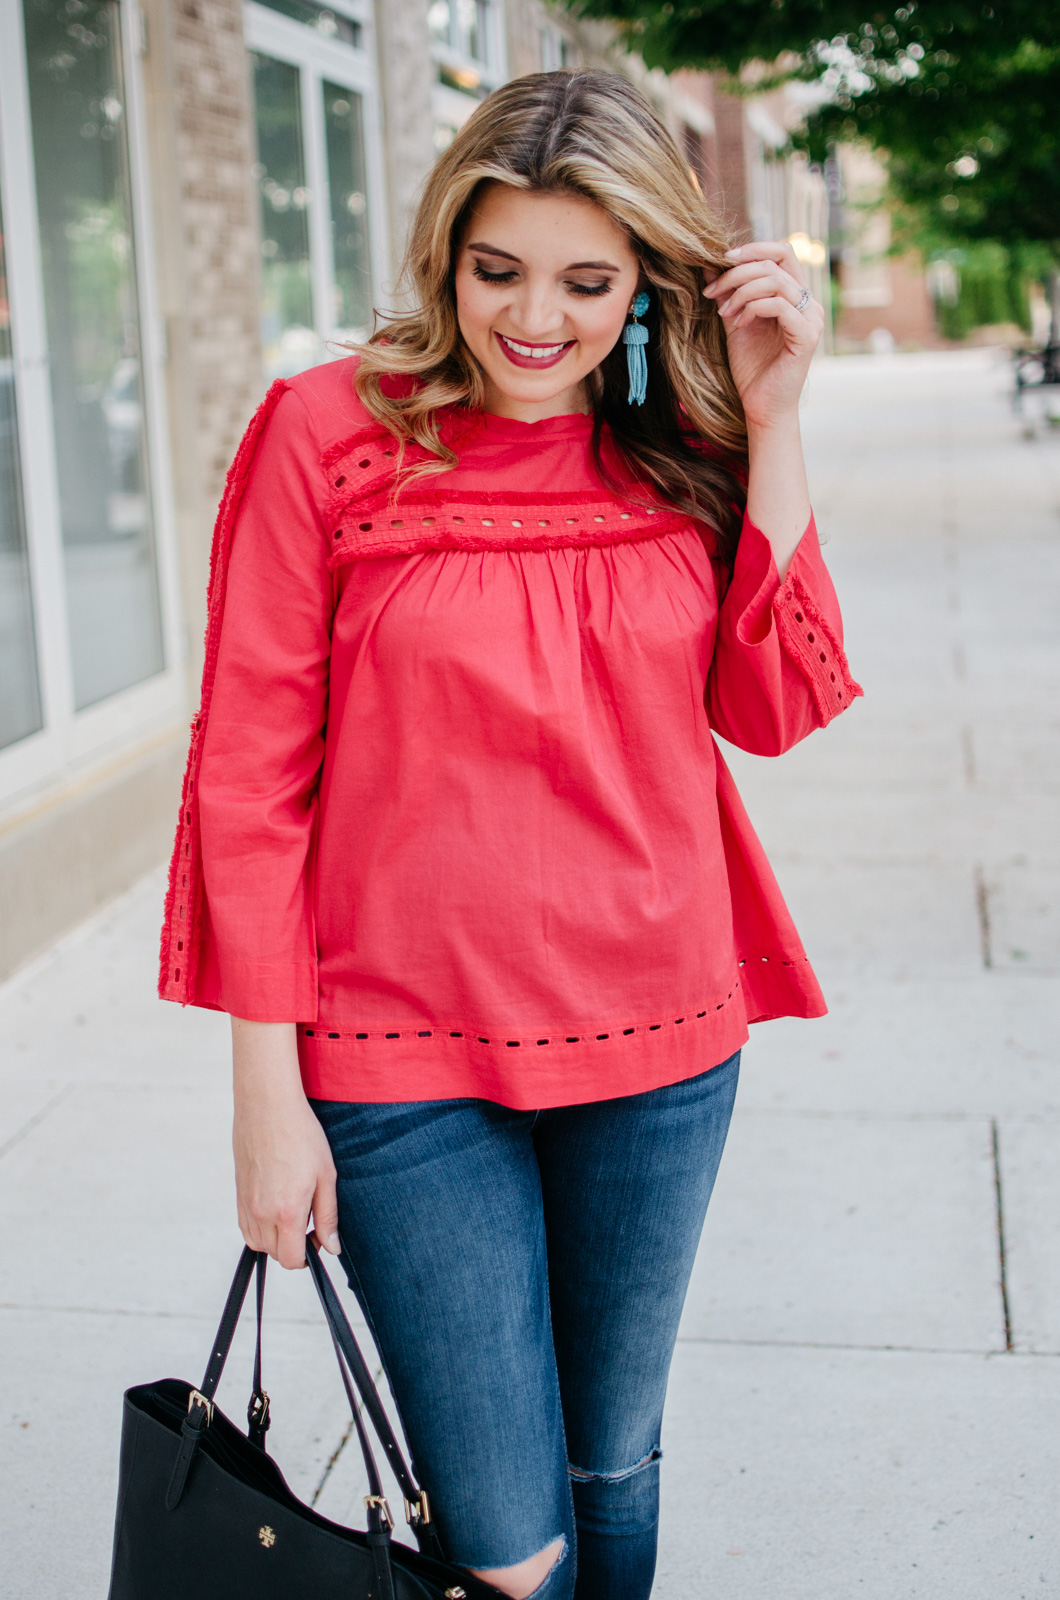 spring outfit fringe embellished top | Get more cute spring weekend outfit ideas at bylaurenm.com!